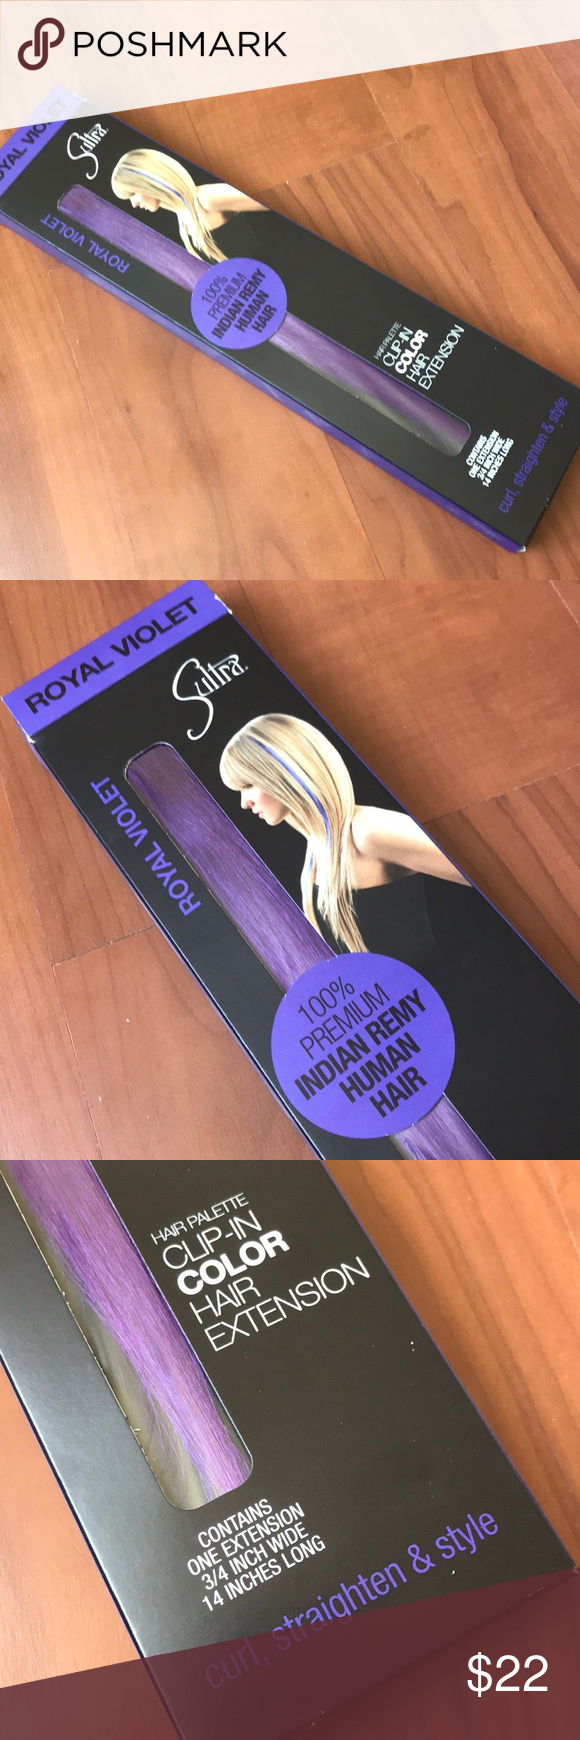 Royal Violet Hair Extension Clip On Nwt Poshmark Finds Pinterest